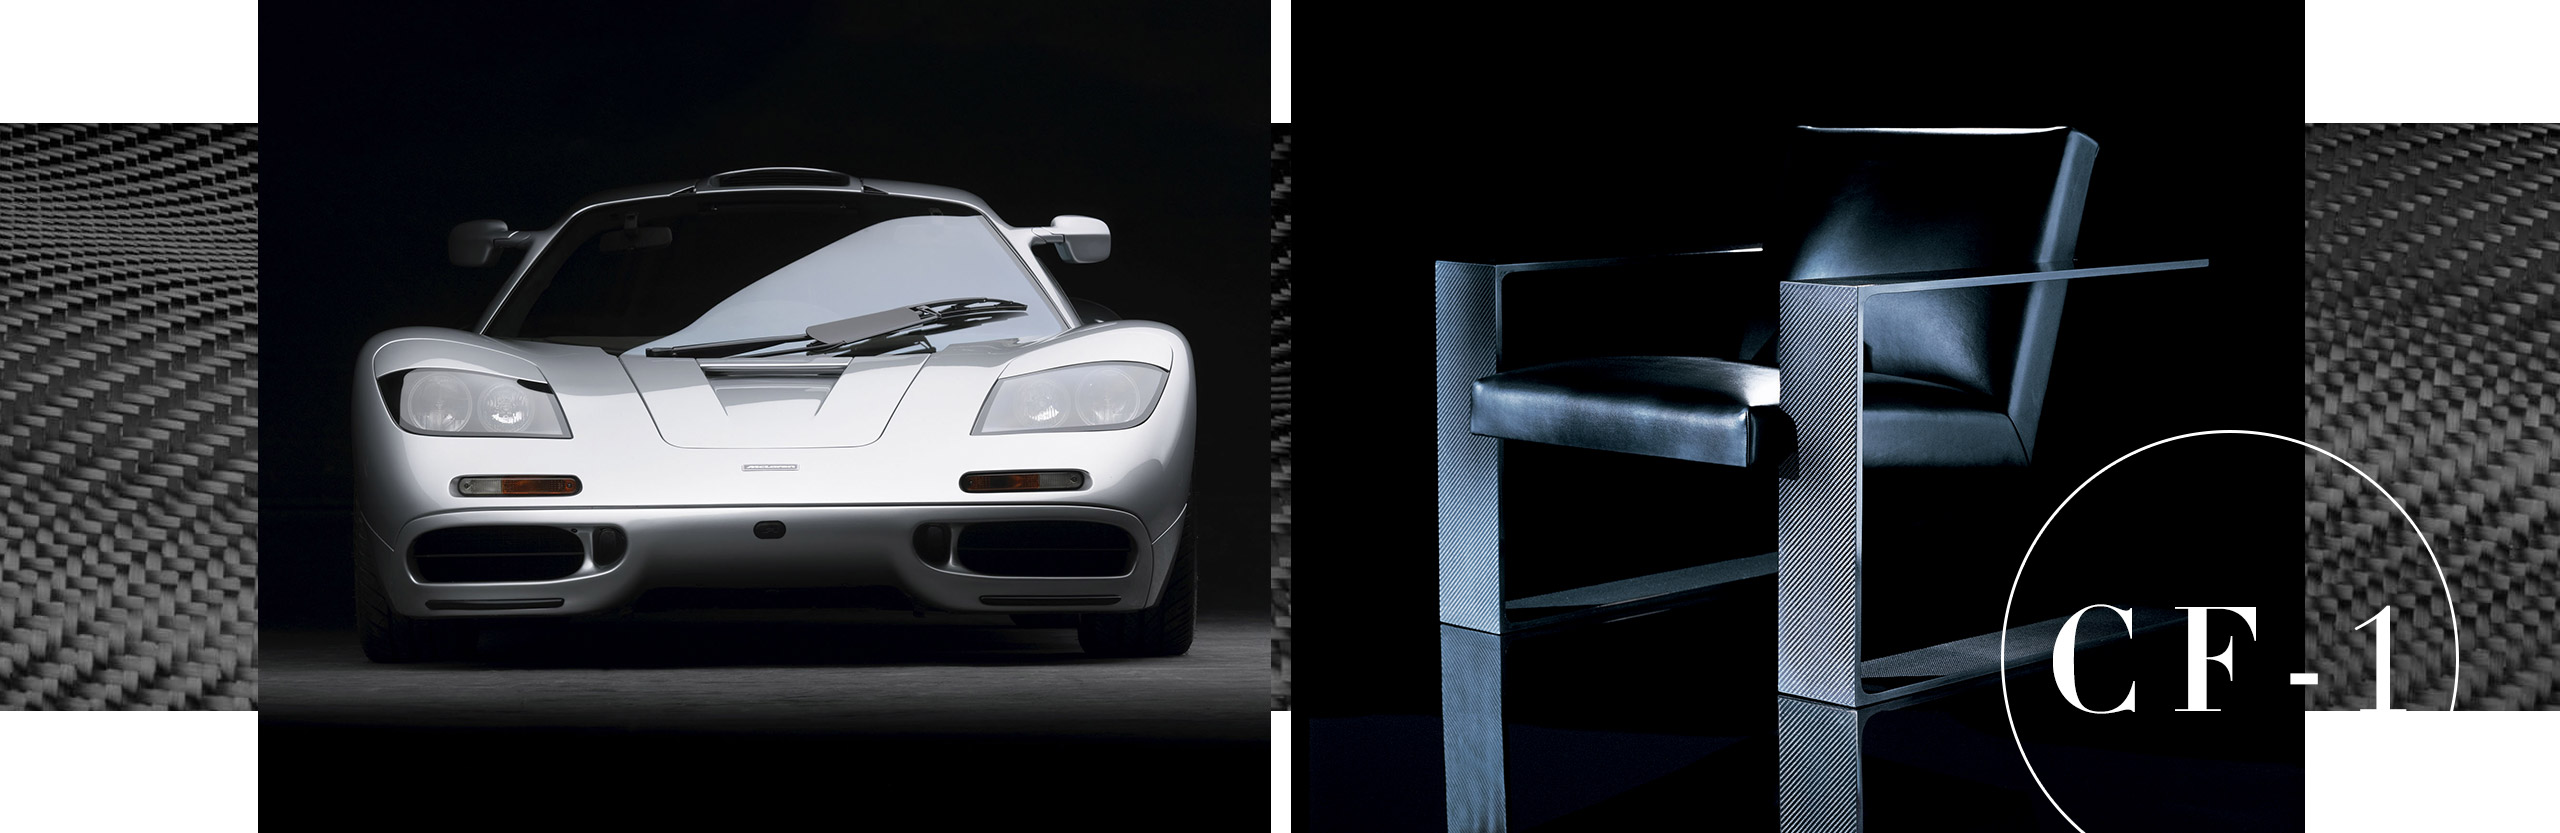 The McLaren F1, and the CF-1 chair from Ralph Lauren Home, inspired by the car's innovative use of carbon fiber